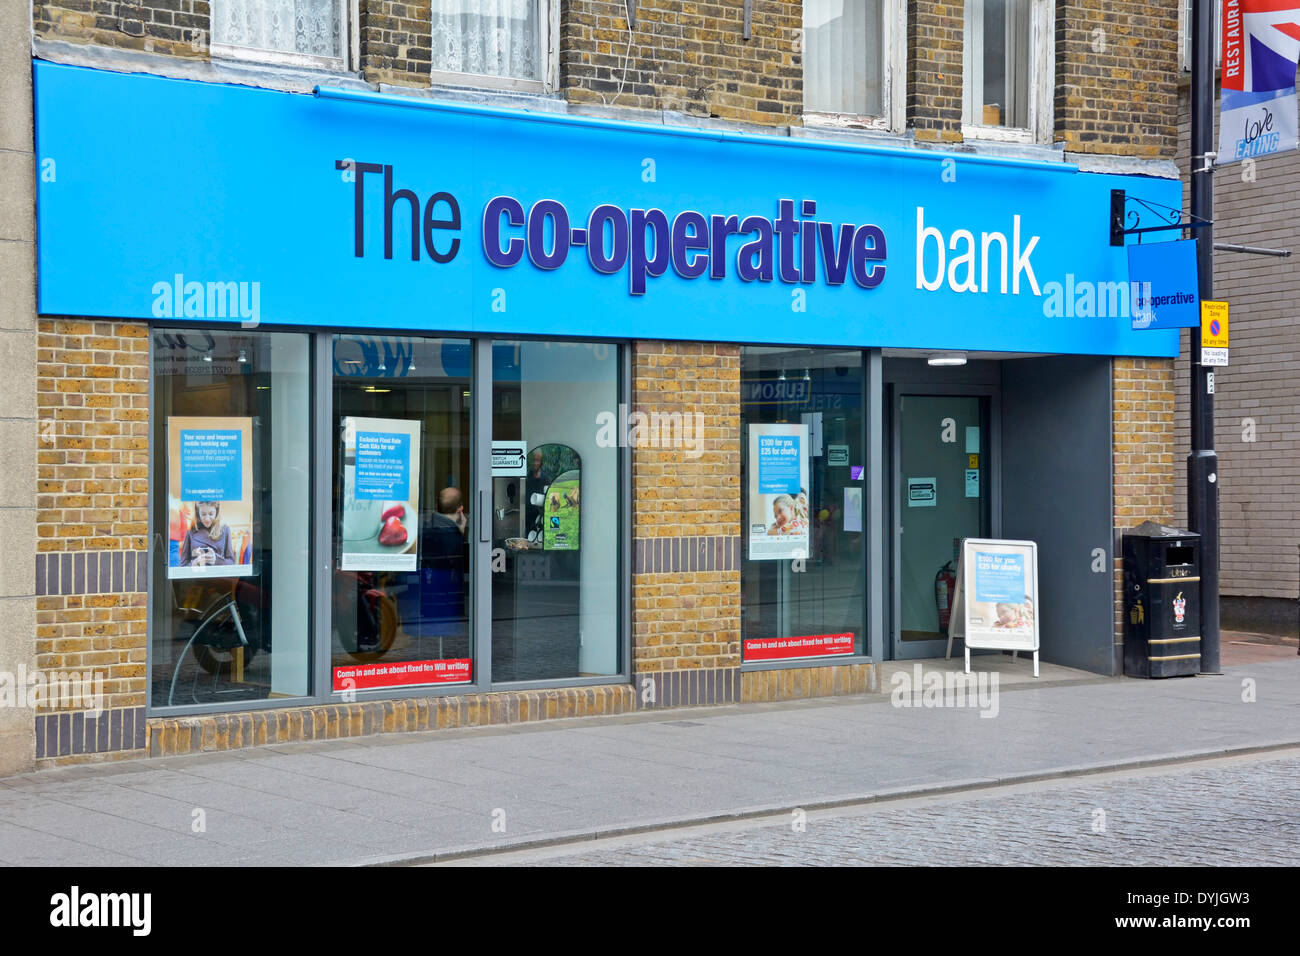 Co op high street bank branch signs Brentwood Essex England UK - Stock Image